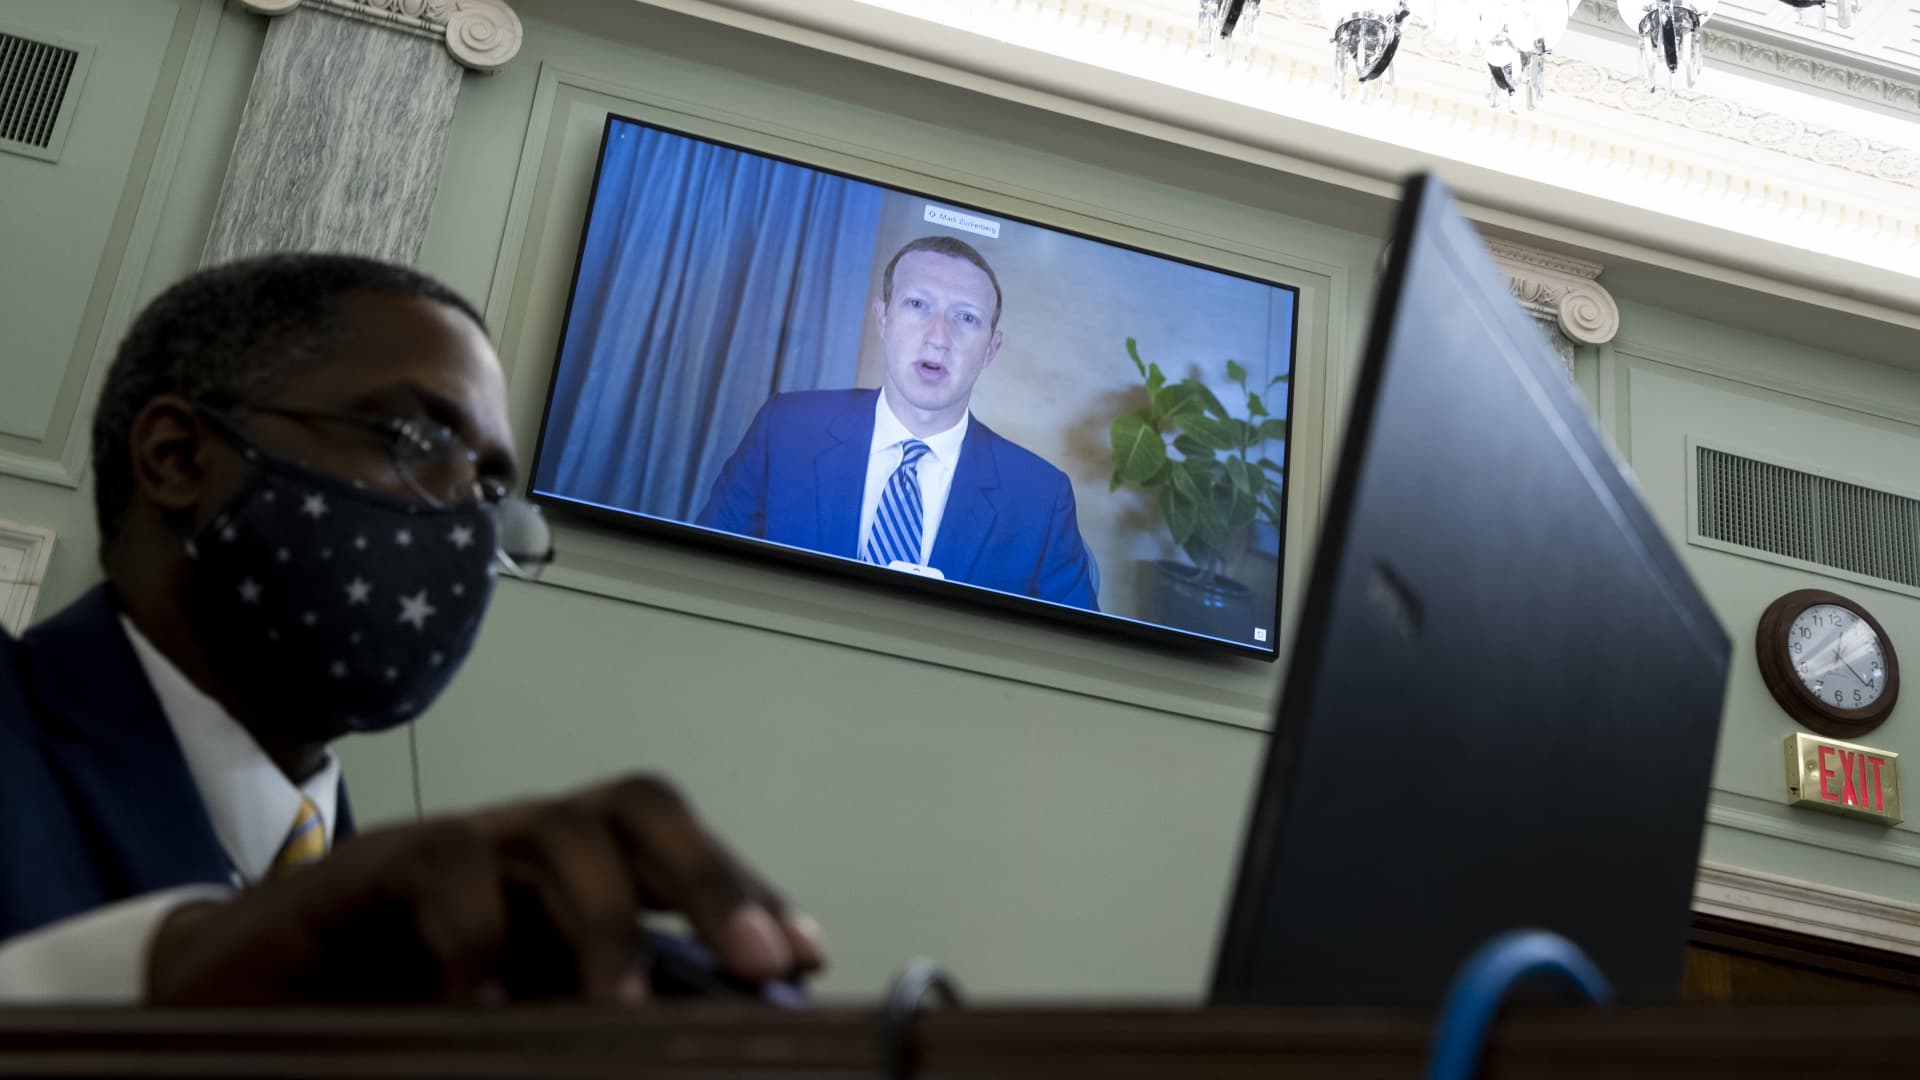 CEO of Facebook Mark Zuckerberg appears on a monitor behind a stenographer as he testifies remotely during the Senate Commerce, Science, and Transportation Committee hearing 'Does Section 230's Sweeping Immunity Enable Big Tech Bad Behavior?', on Capitol Hill, October 28, 2020 in Washington, DC.